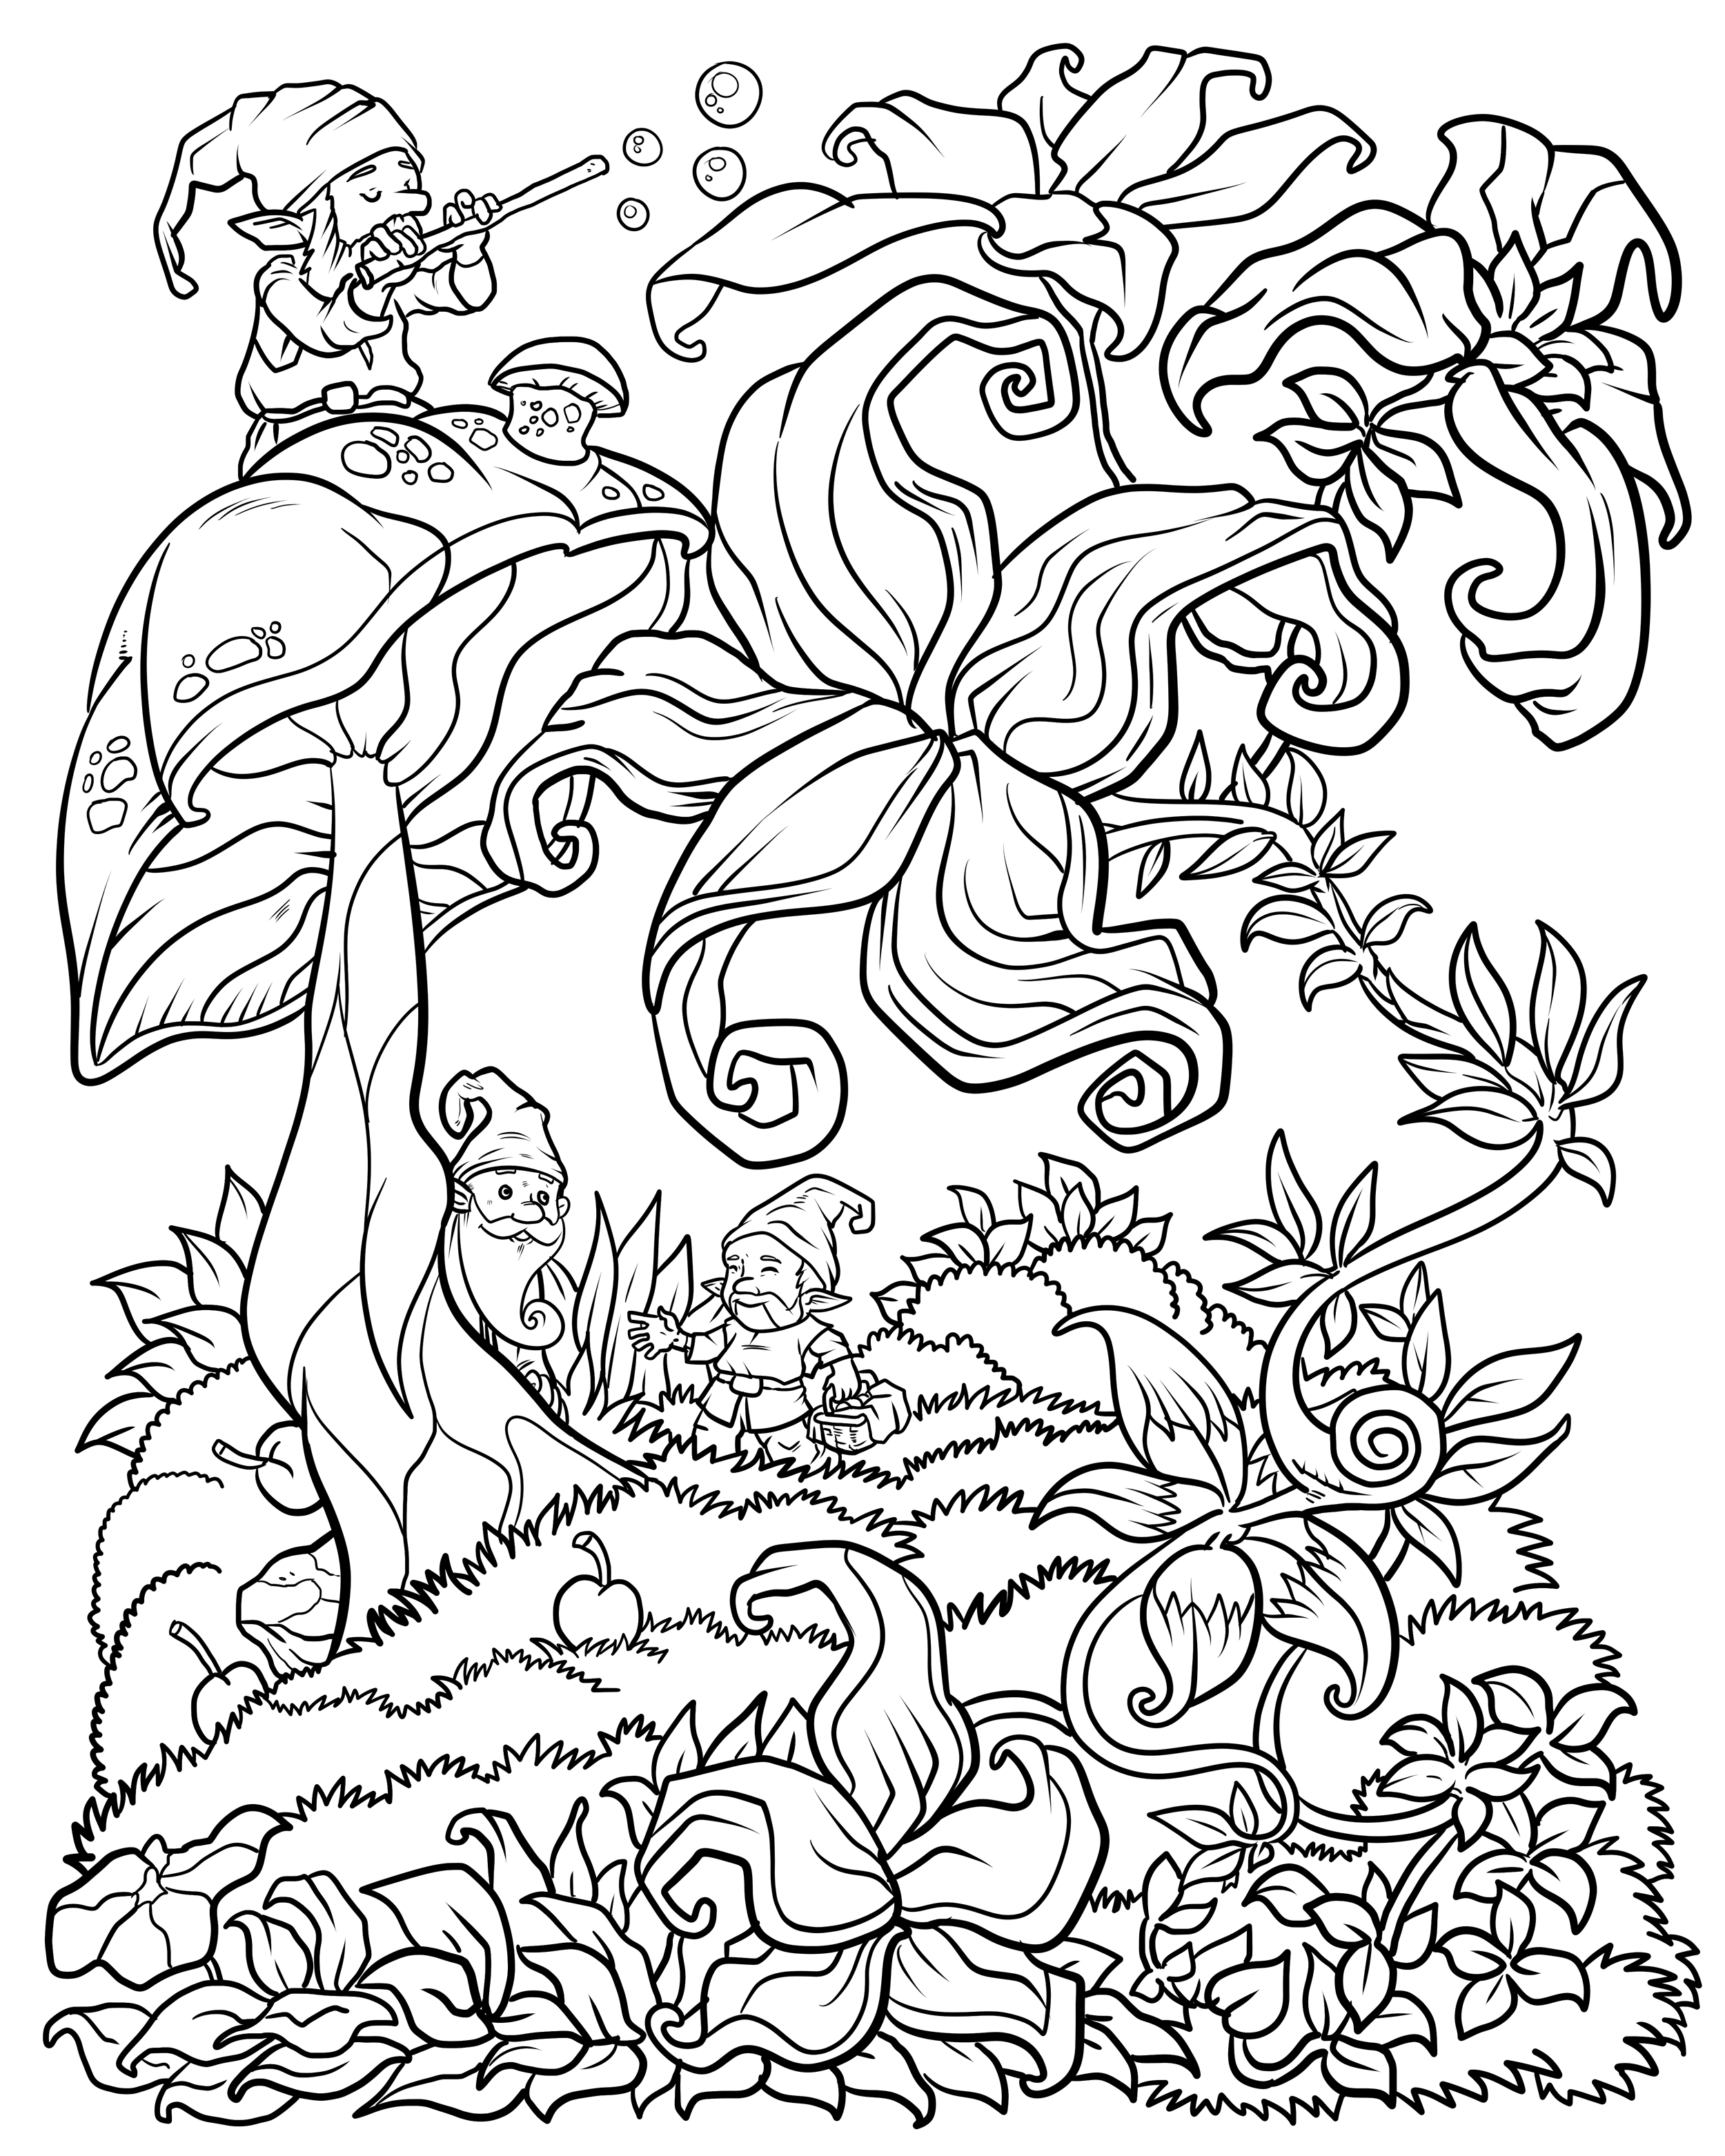 printable pictures to color for adults free printable witch coloring pages for kids adults pictures color for to printable